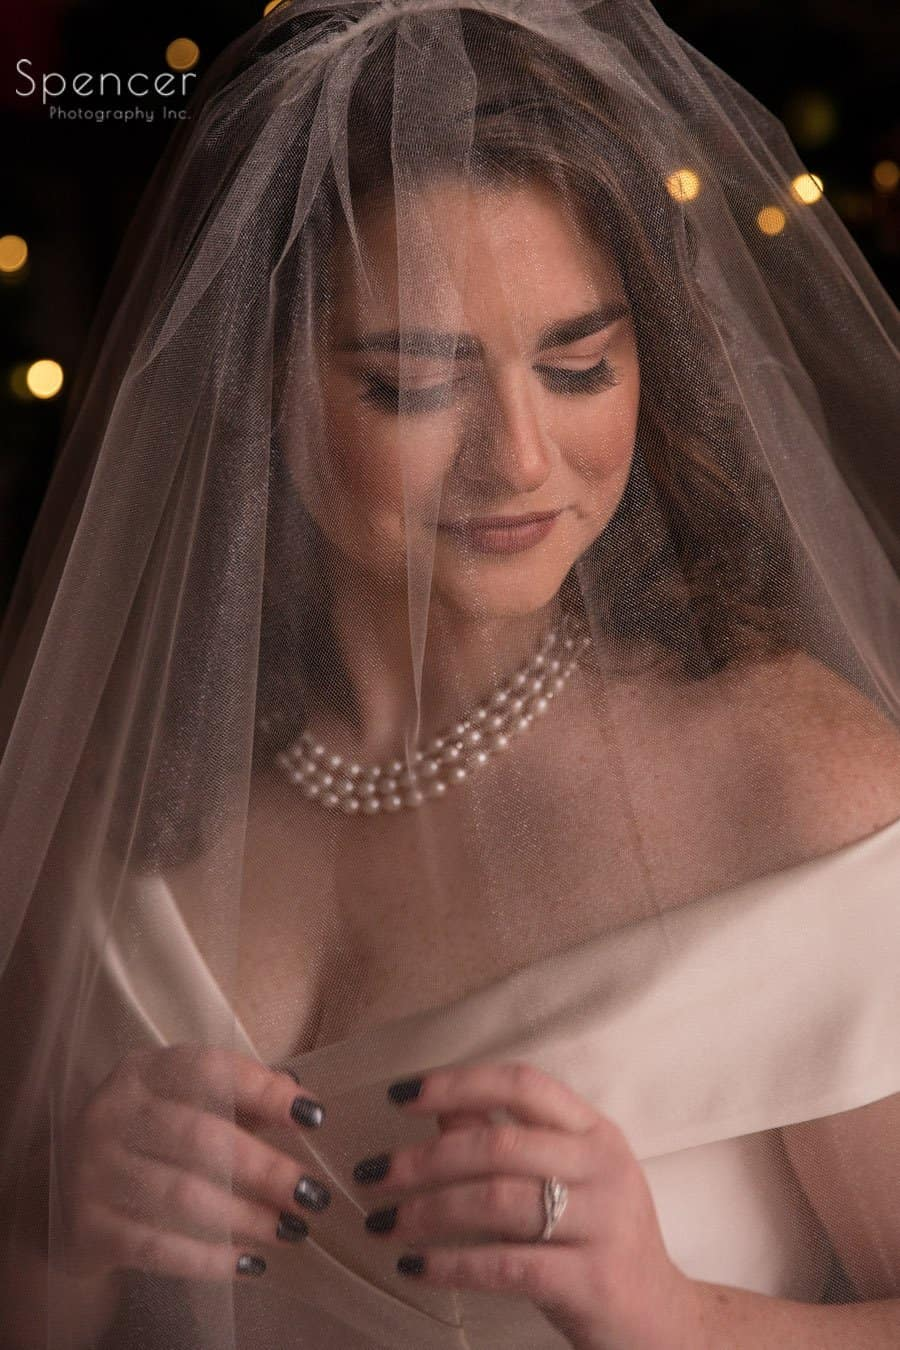 wedding day picture of bride featuring her veil